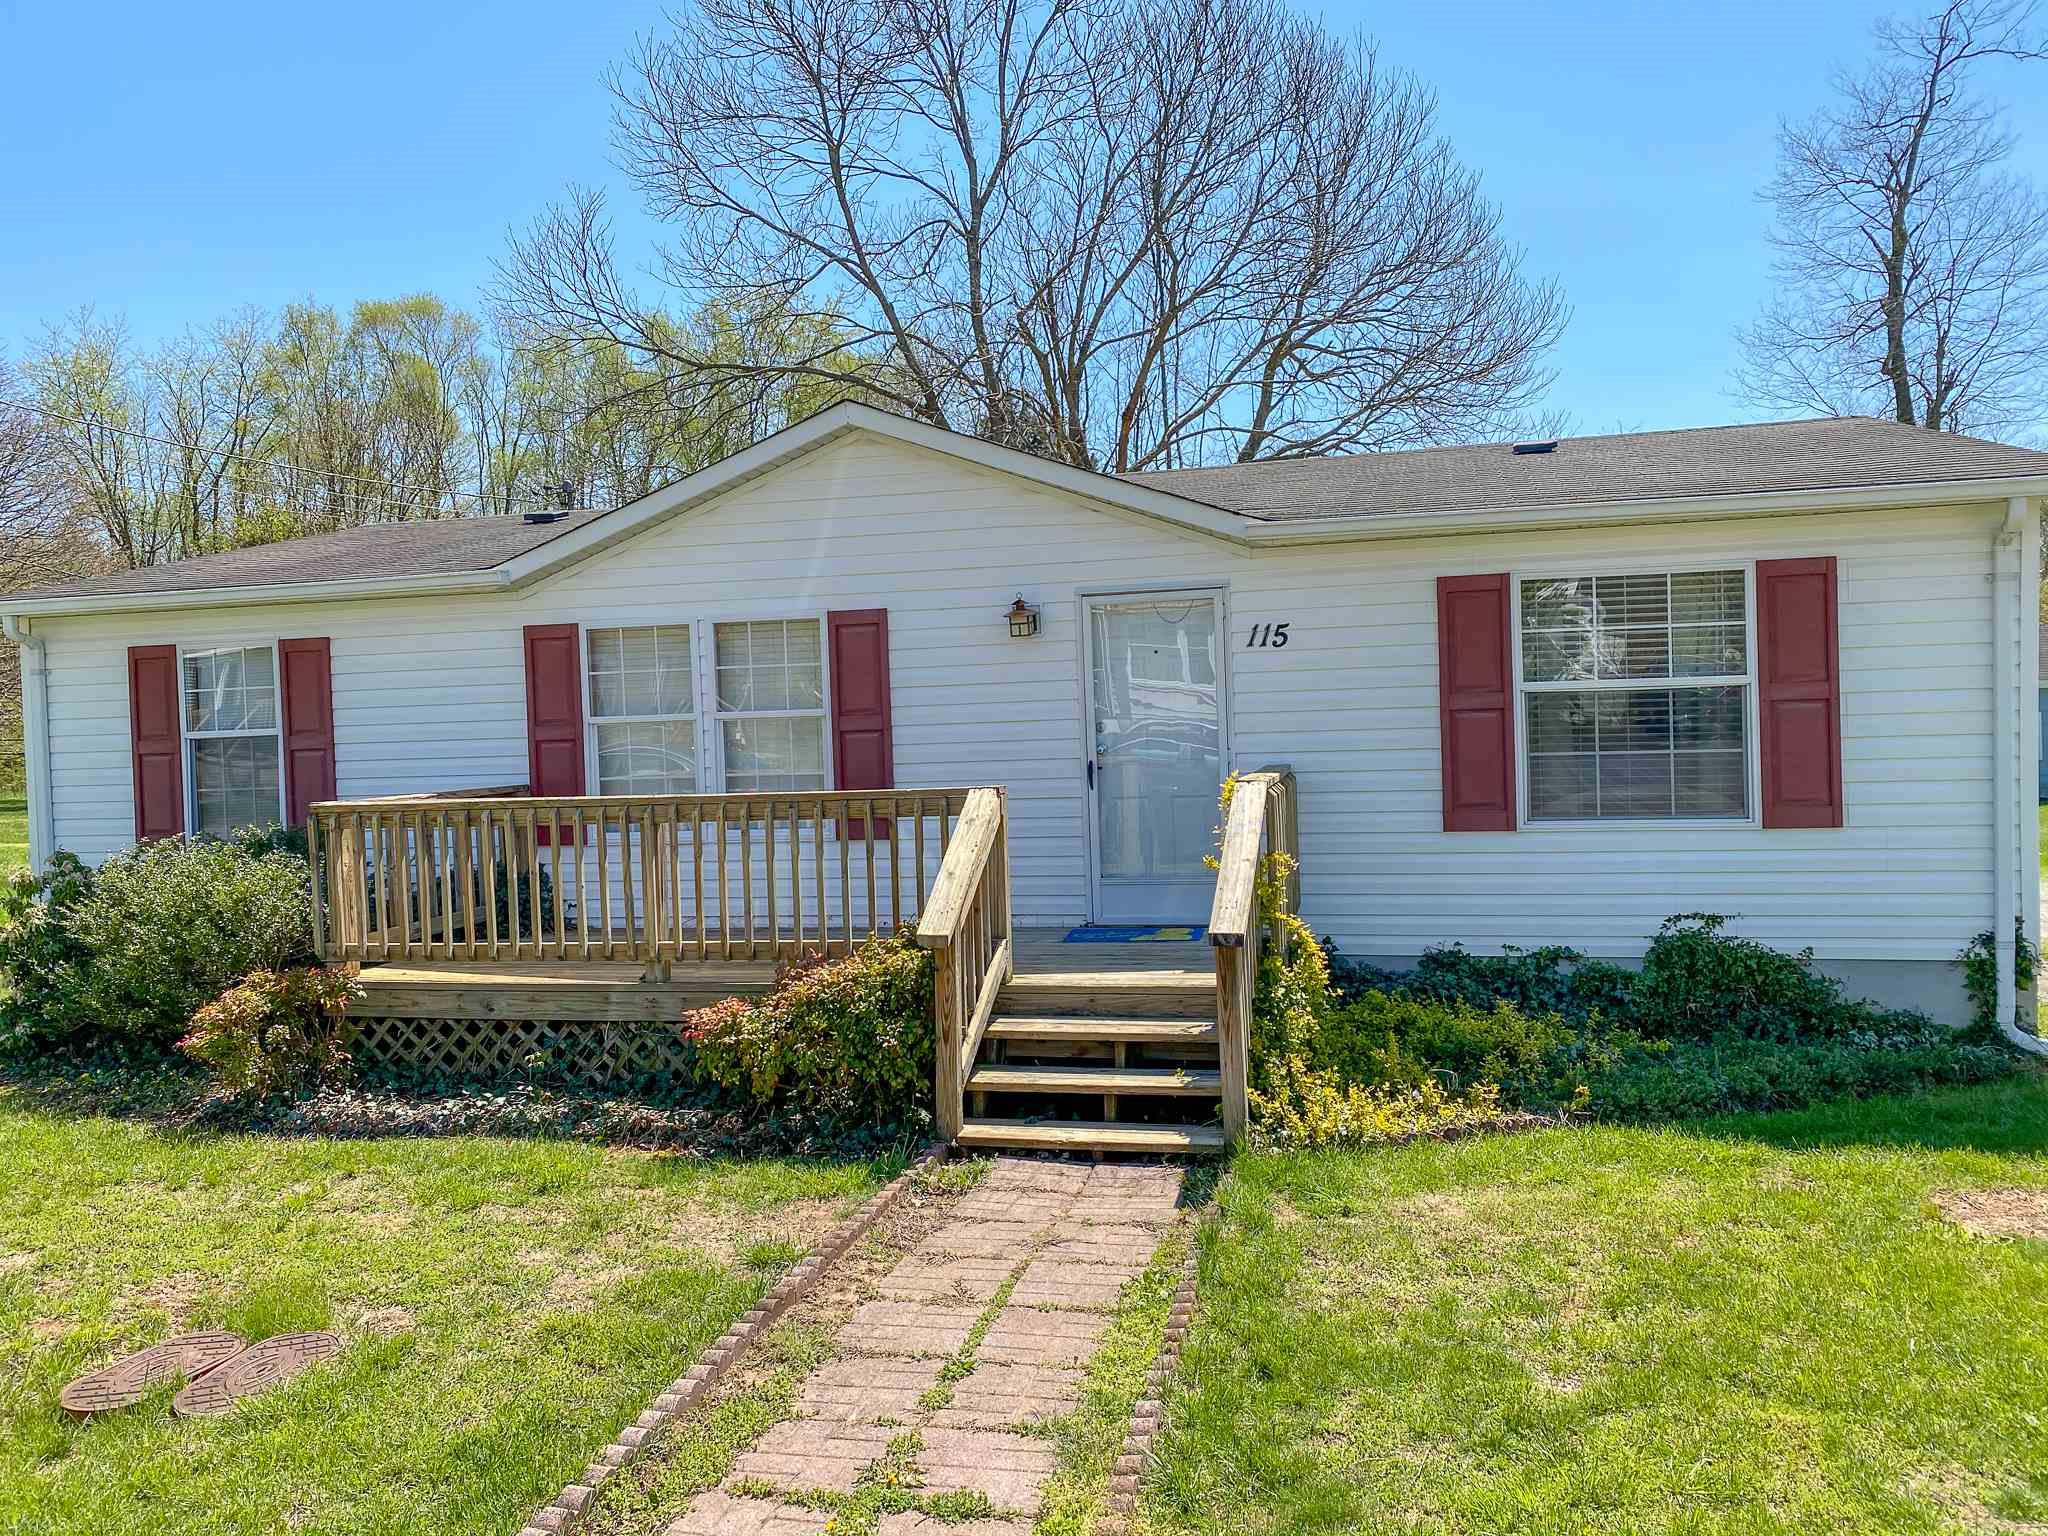 Come check out this very well kept 3 br, 2 bth double wide in the heart of Pembroke, VA. Just minutes from the cascades and walking distance to local restaurants and parks. This is the perfect starter home for the first time homebuyer or a family. Quiet street with great neighbors!